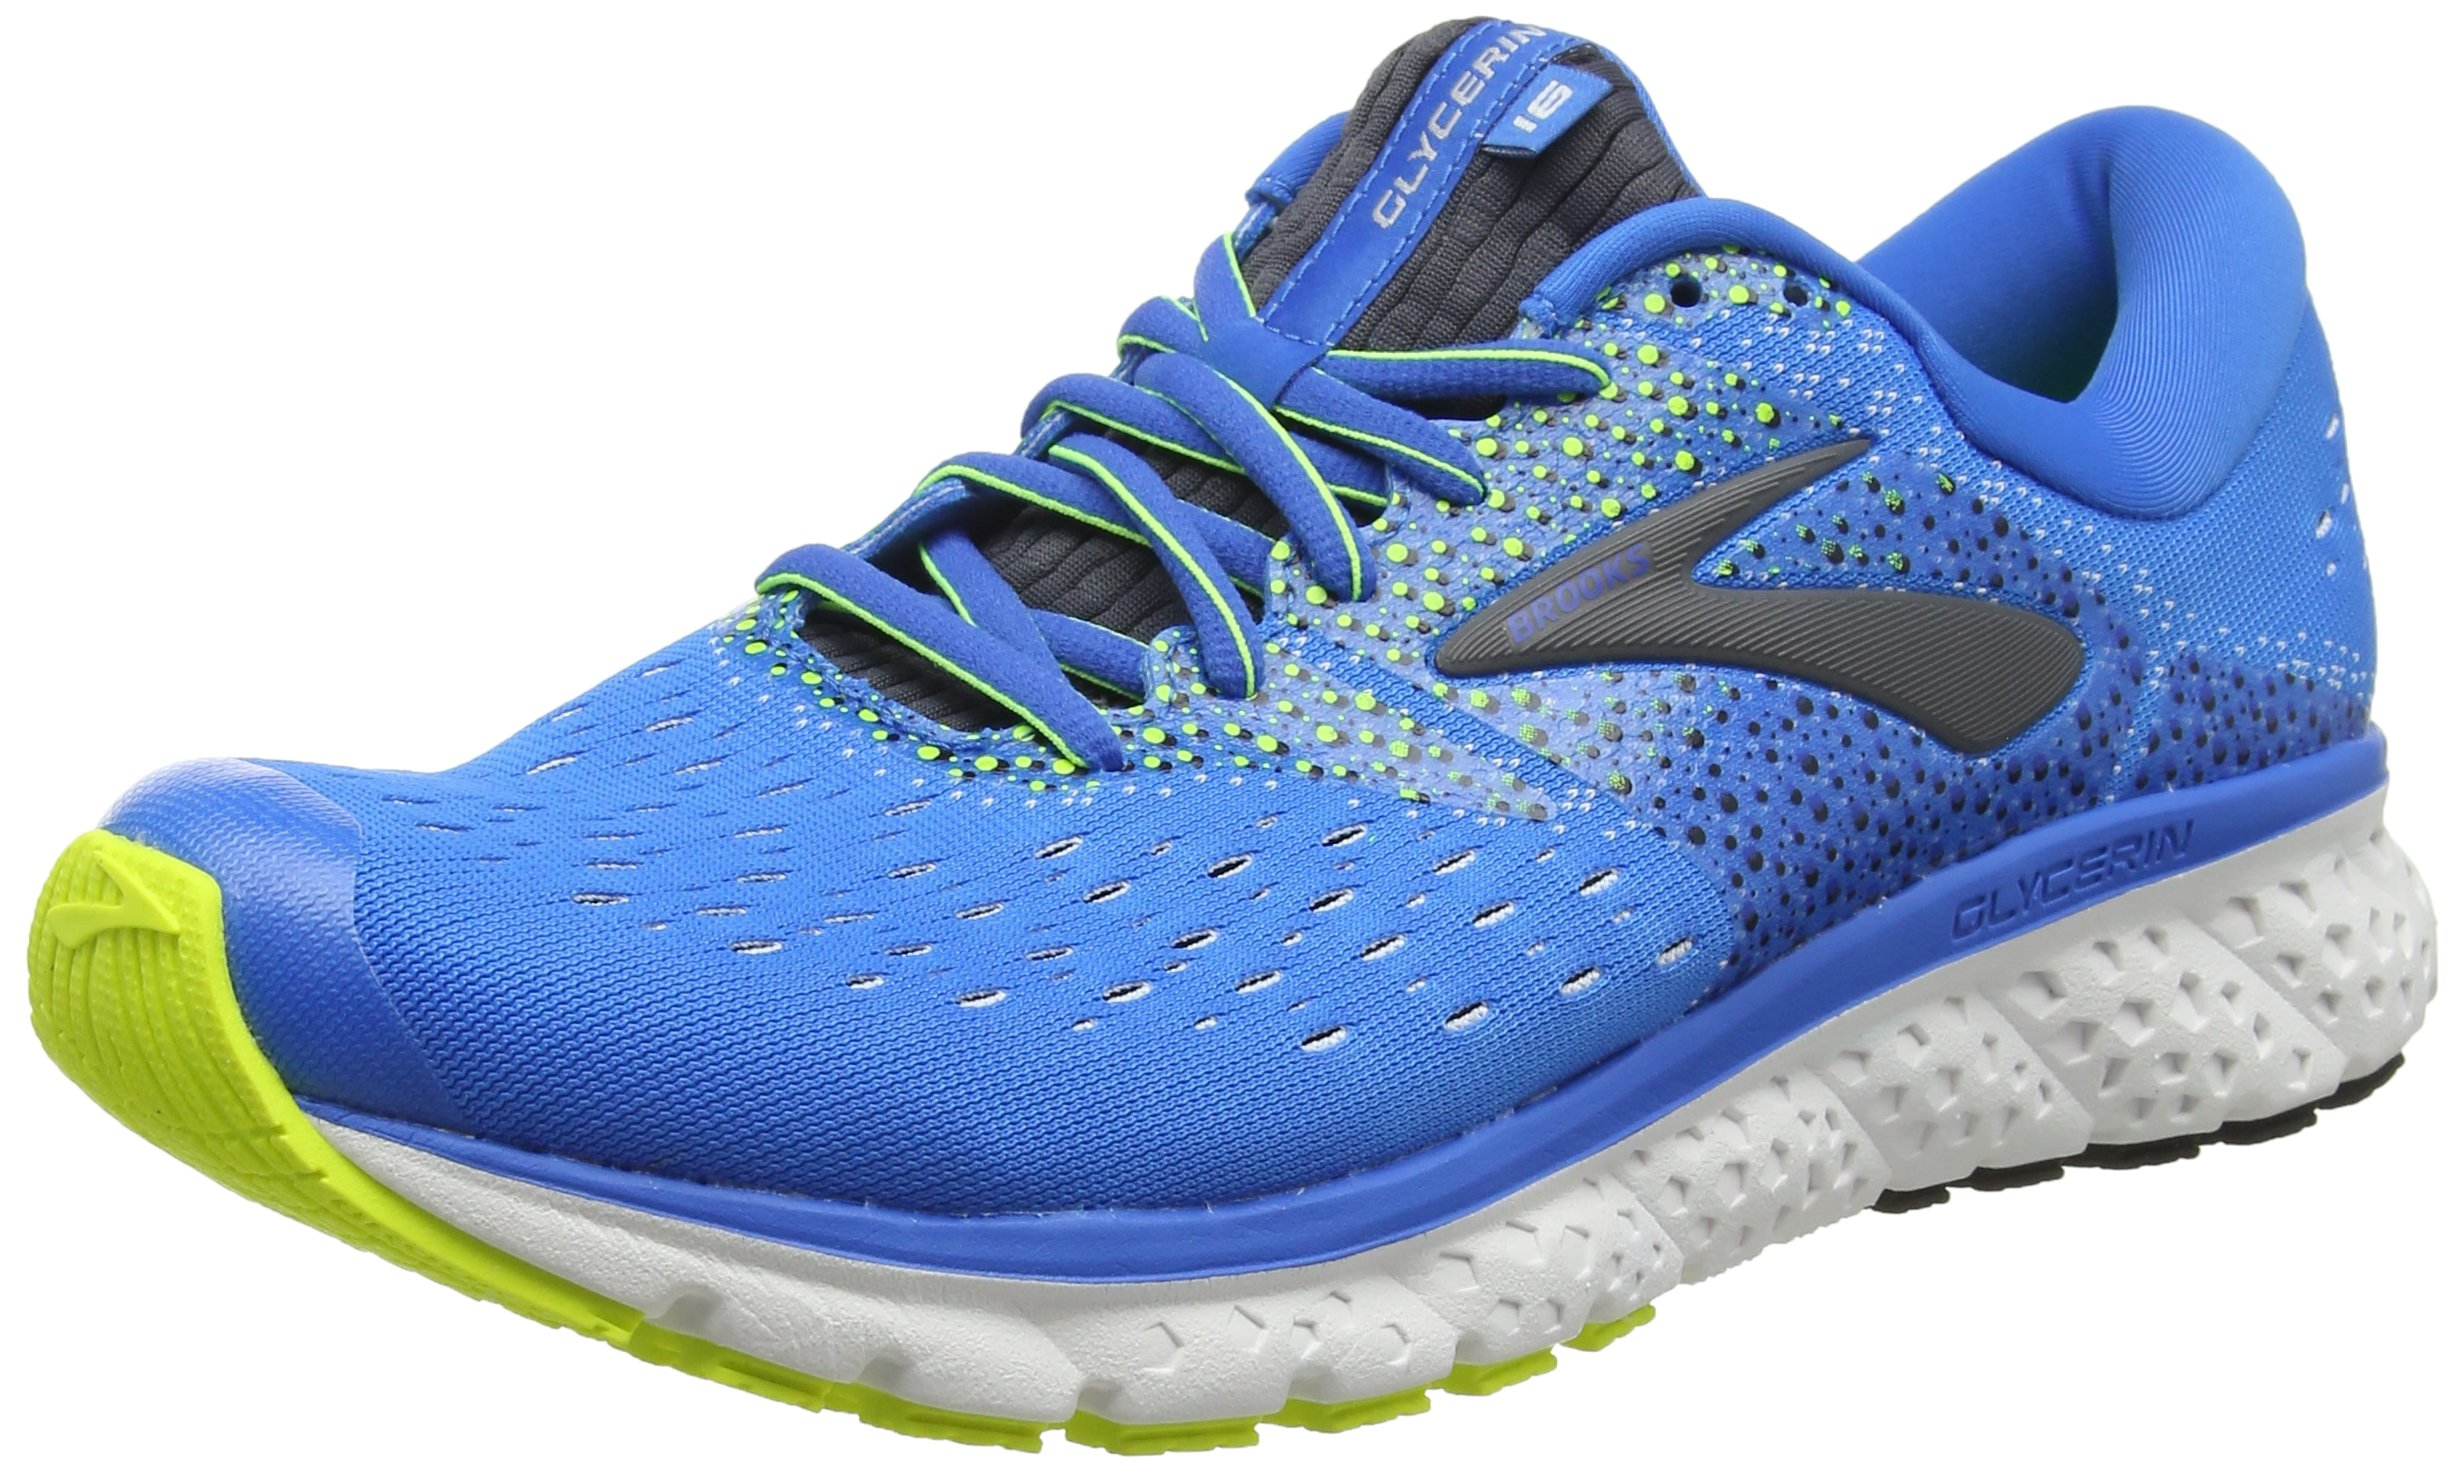 dd5488bfa7fd6 Galleon - Brooks Mens Glycerin 16 - Blue Ebony Nightlife - D - 8.5